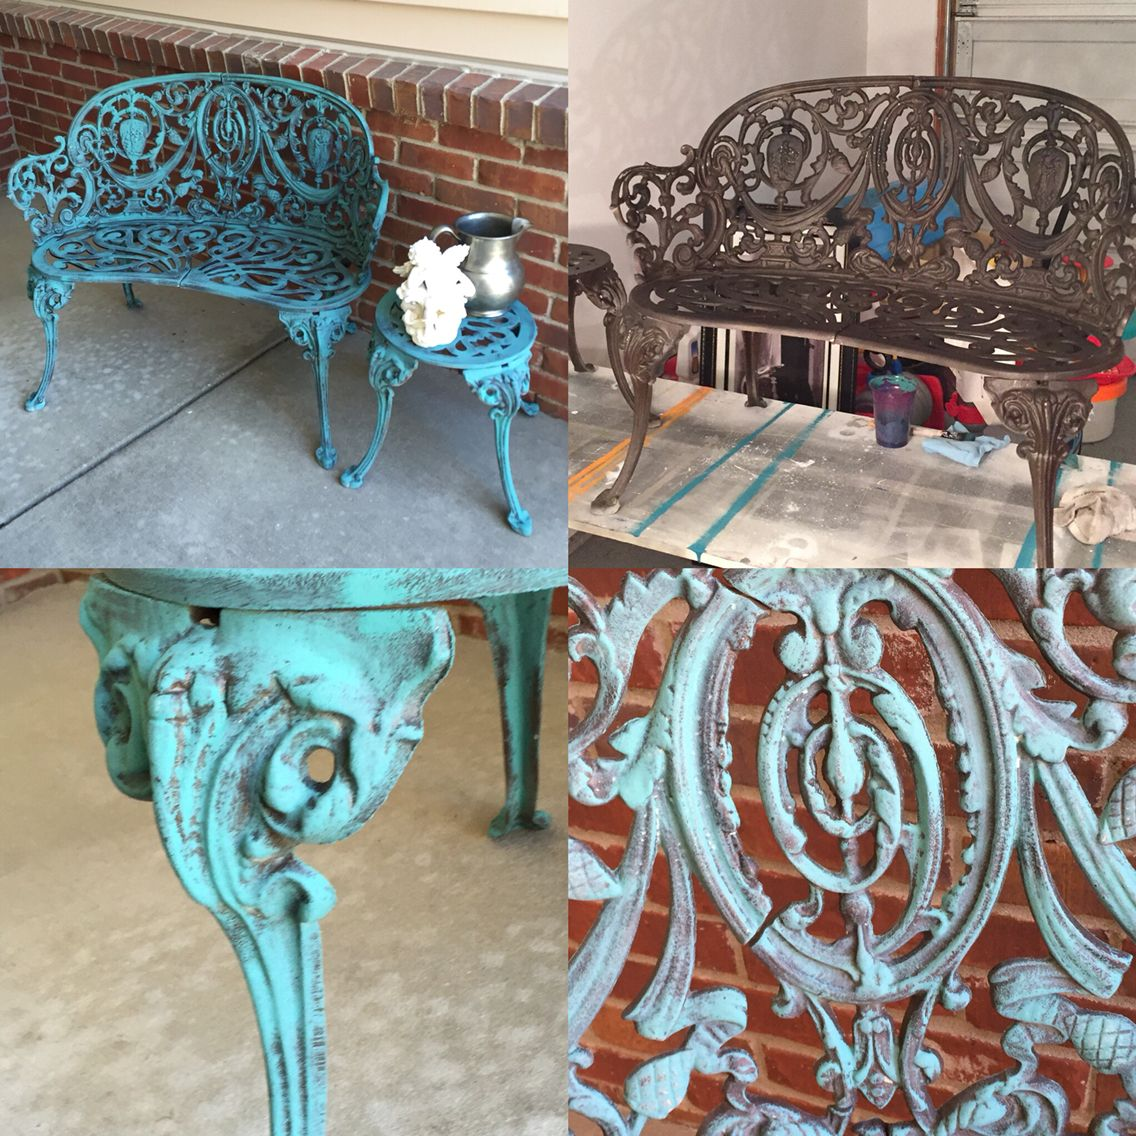 Wrought Iron Garden Bench And Table